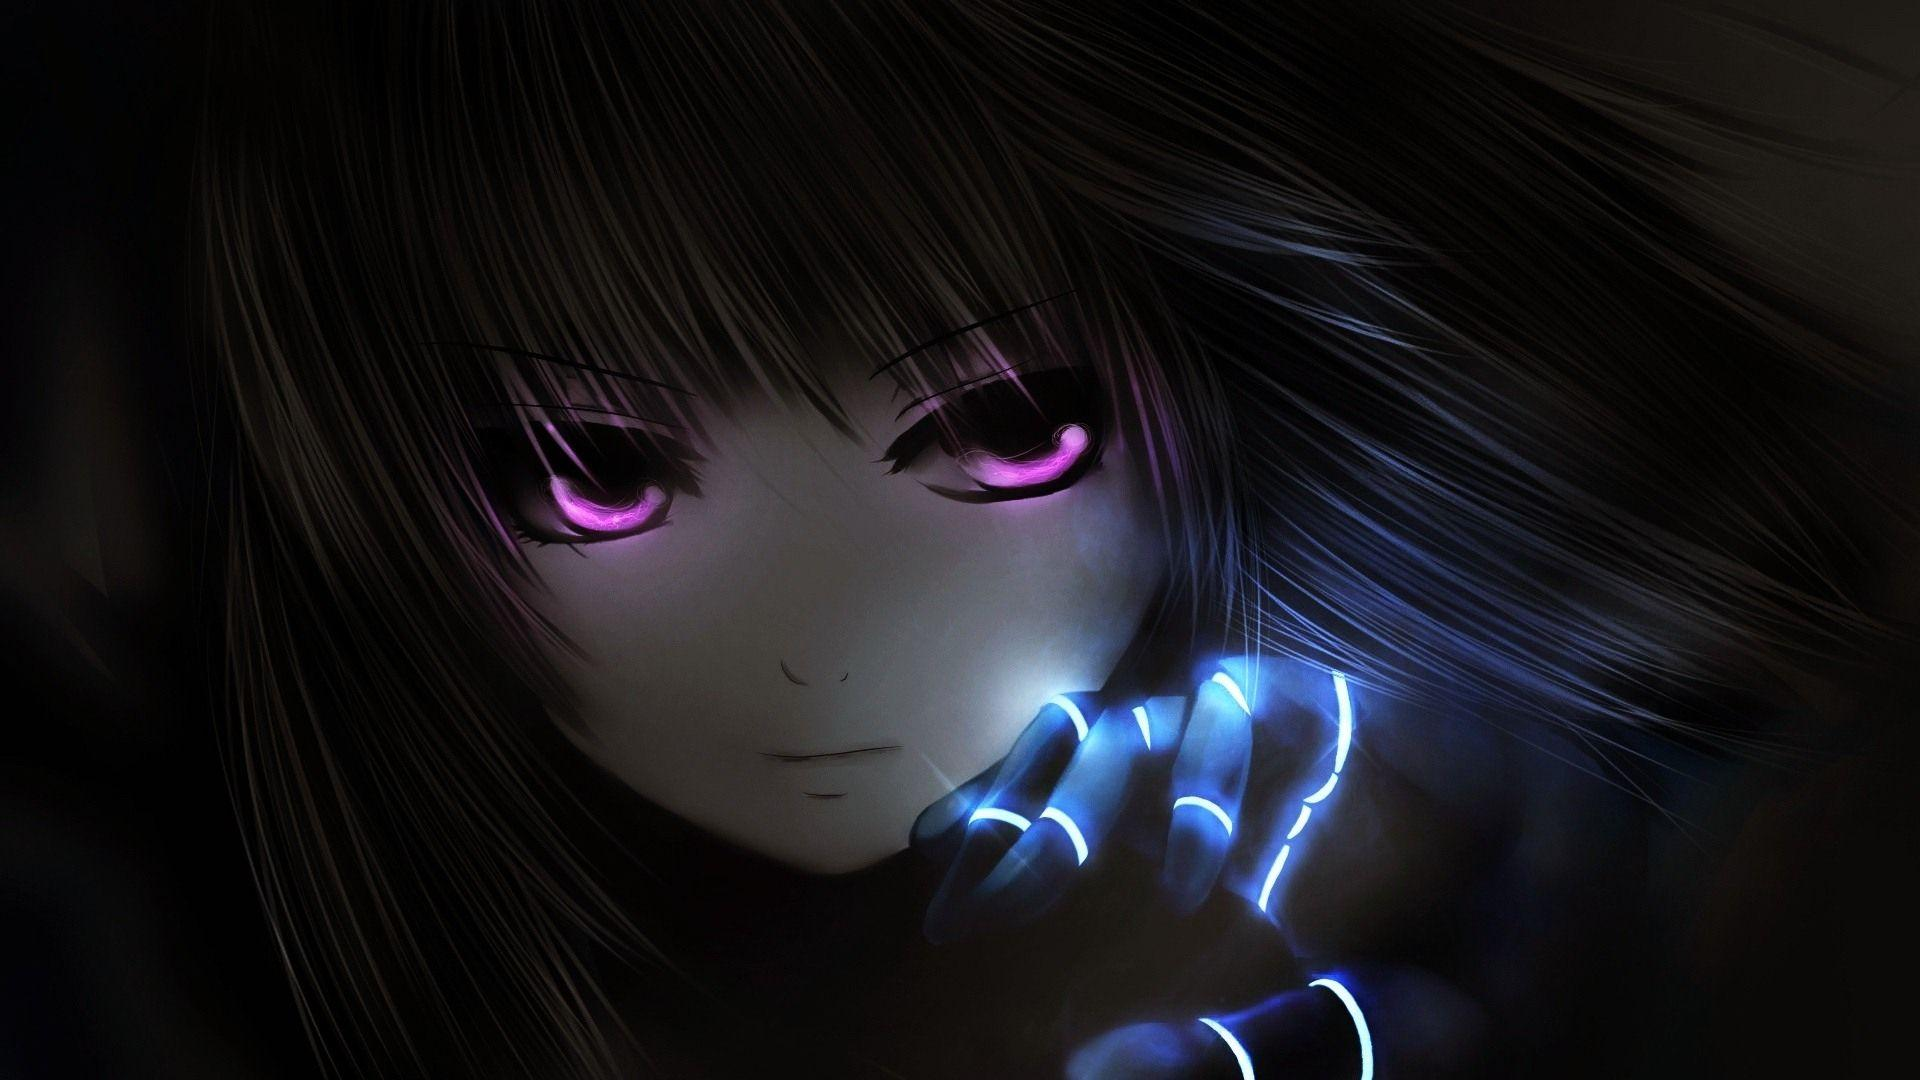 Dark Anime Girl Hd Wallpapers Wallpaper Cave